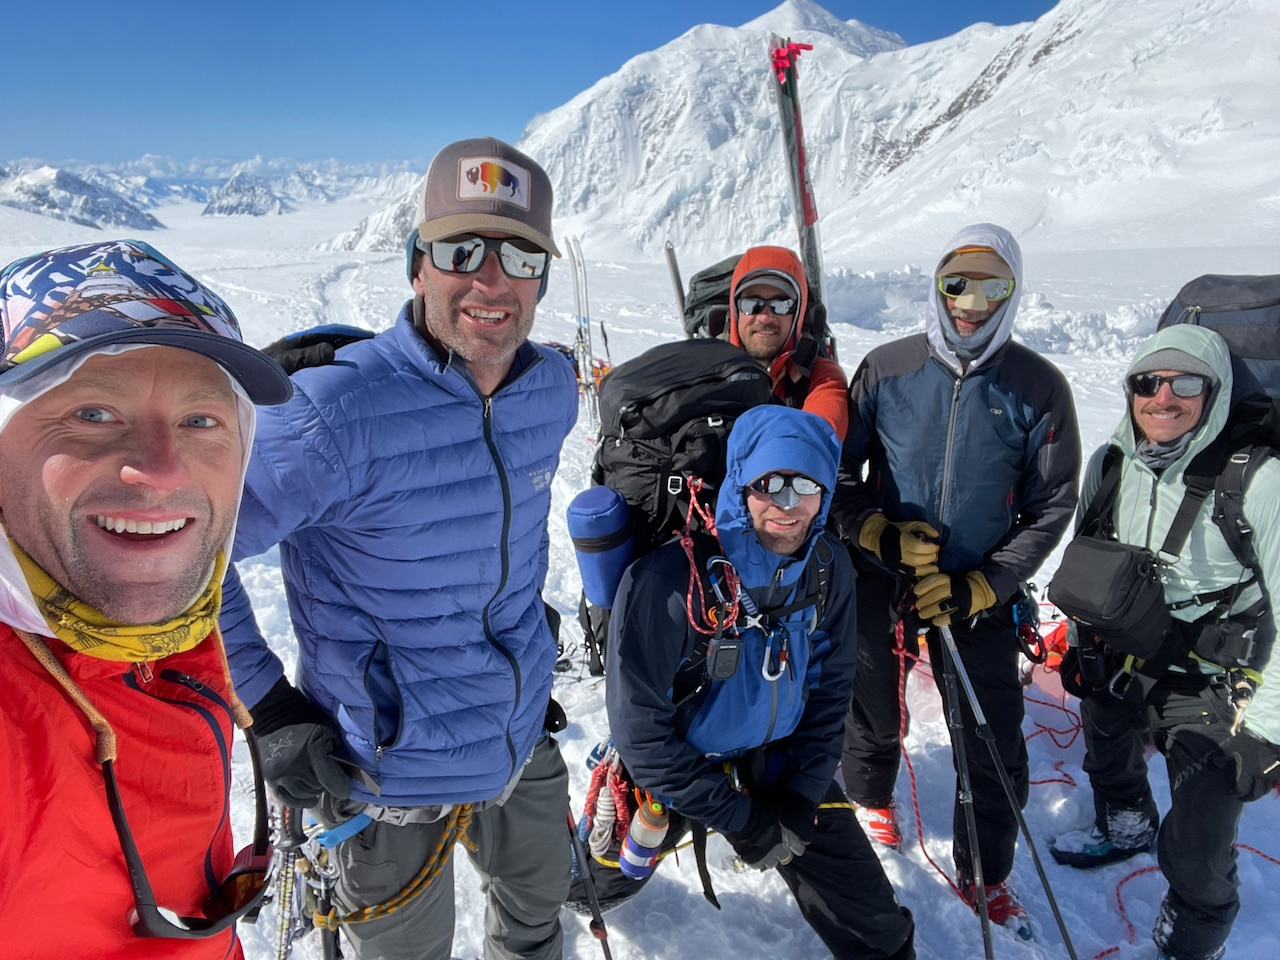 Six men clad in heavy winter gear pose for a photo on a snowy mountainside.